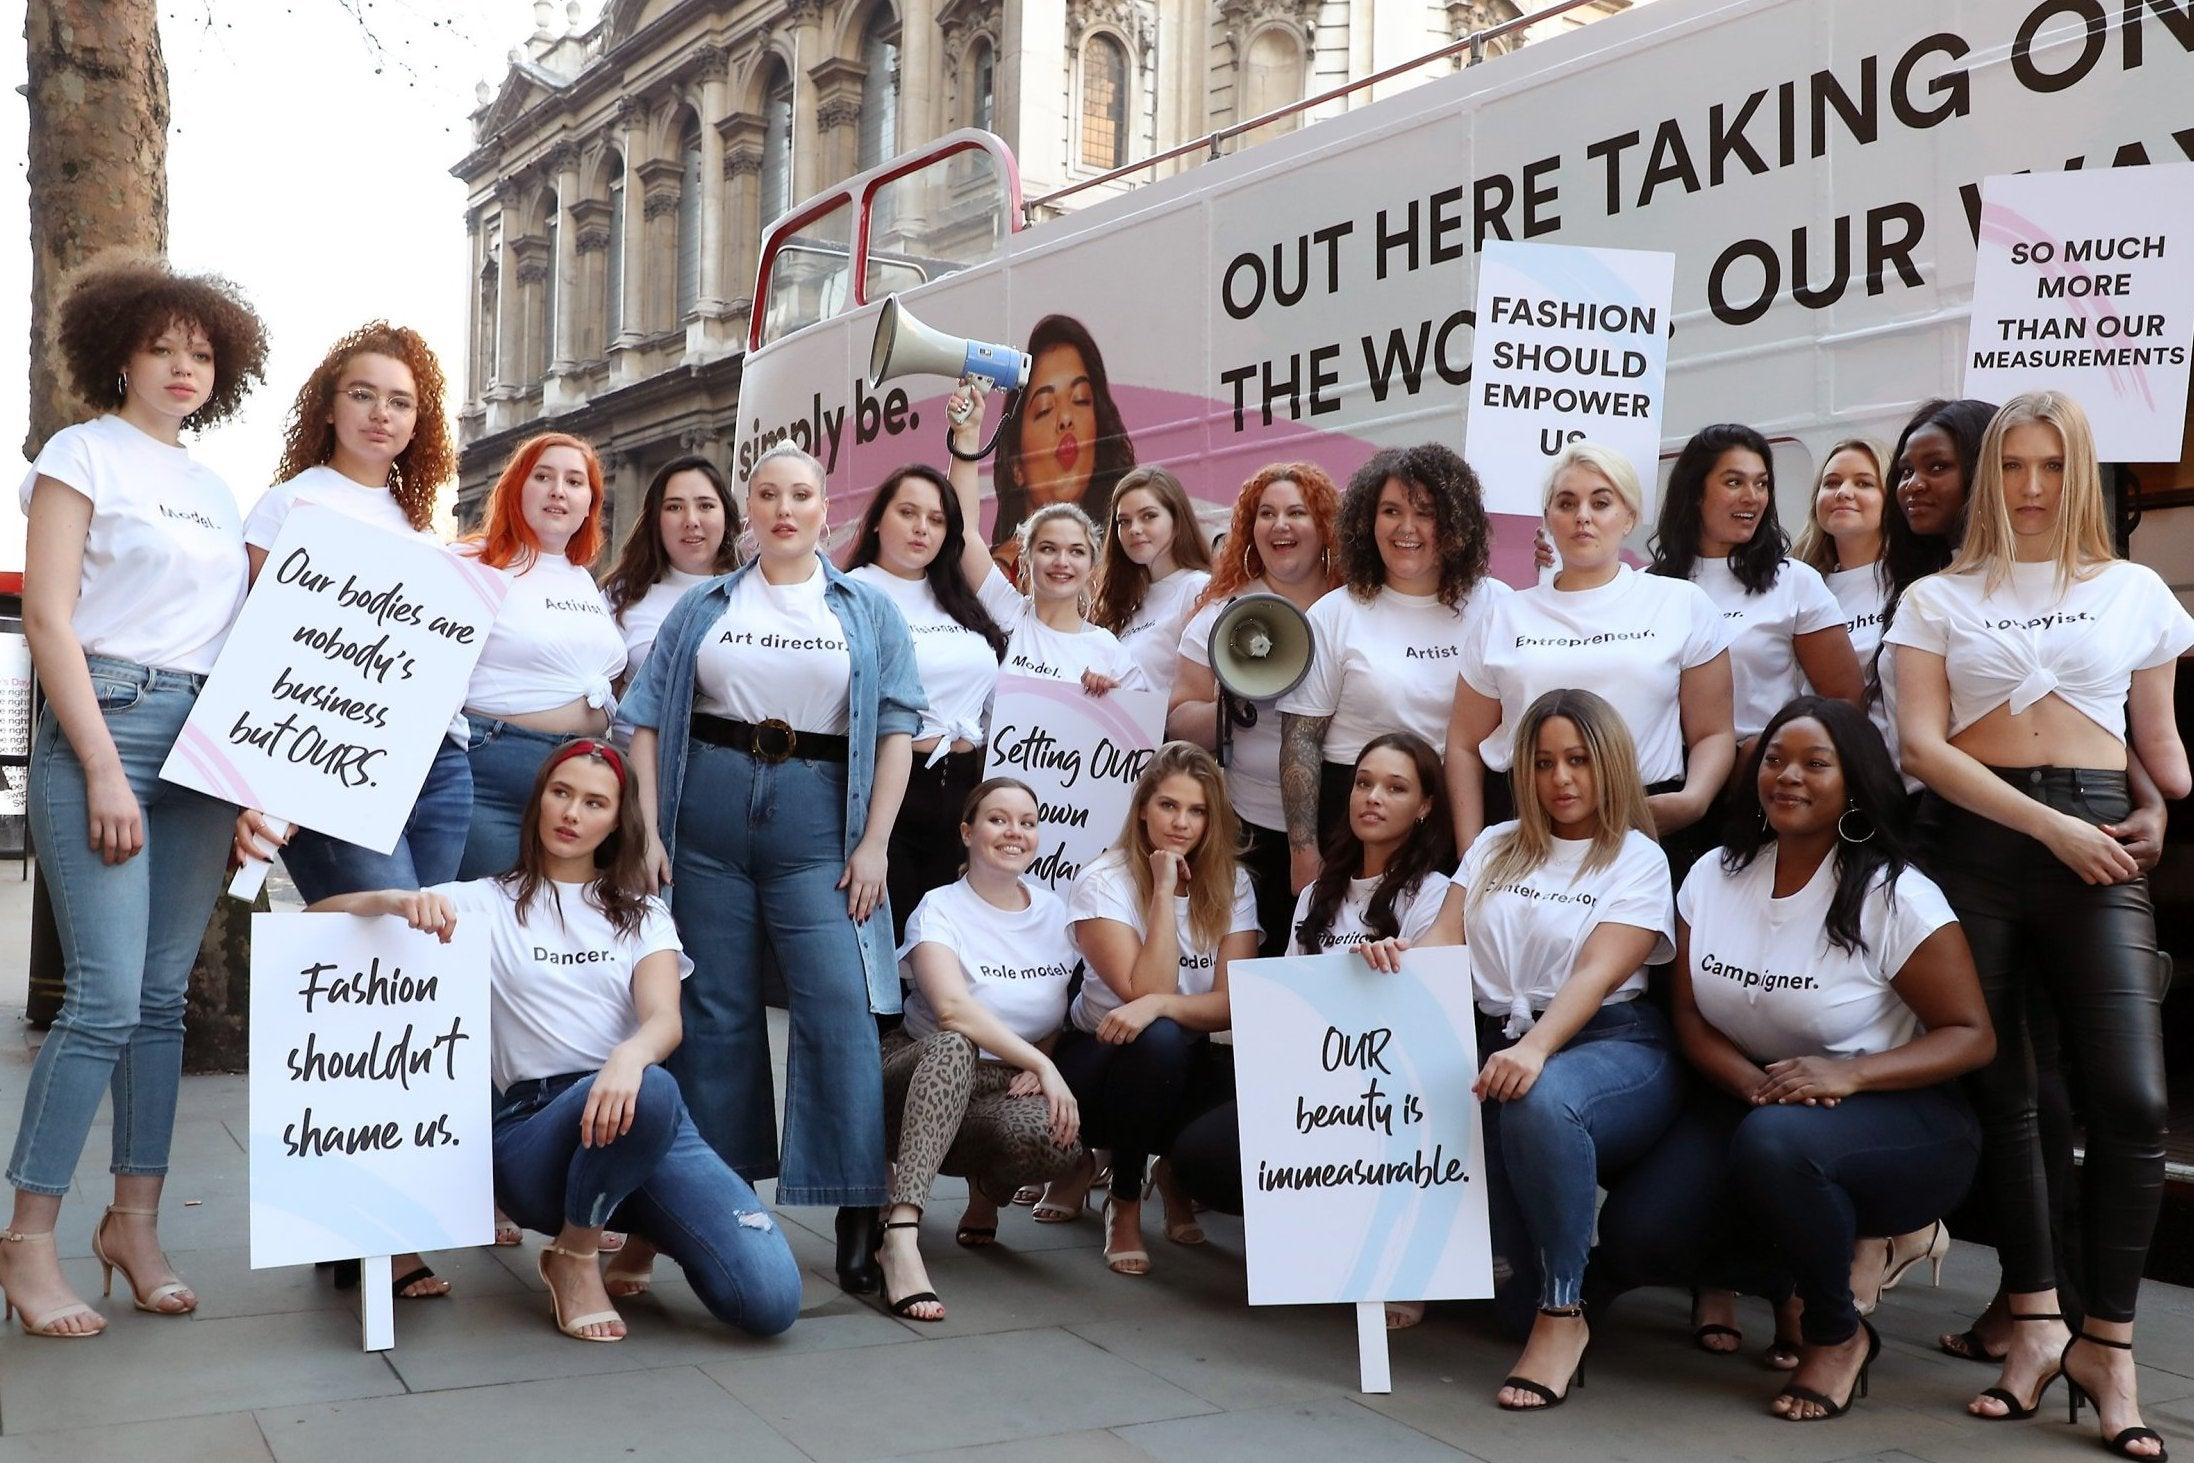 cfc17fb00f2c7 Plus-size models protest outside calling for body inclusivity